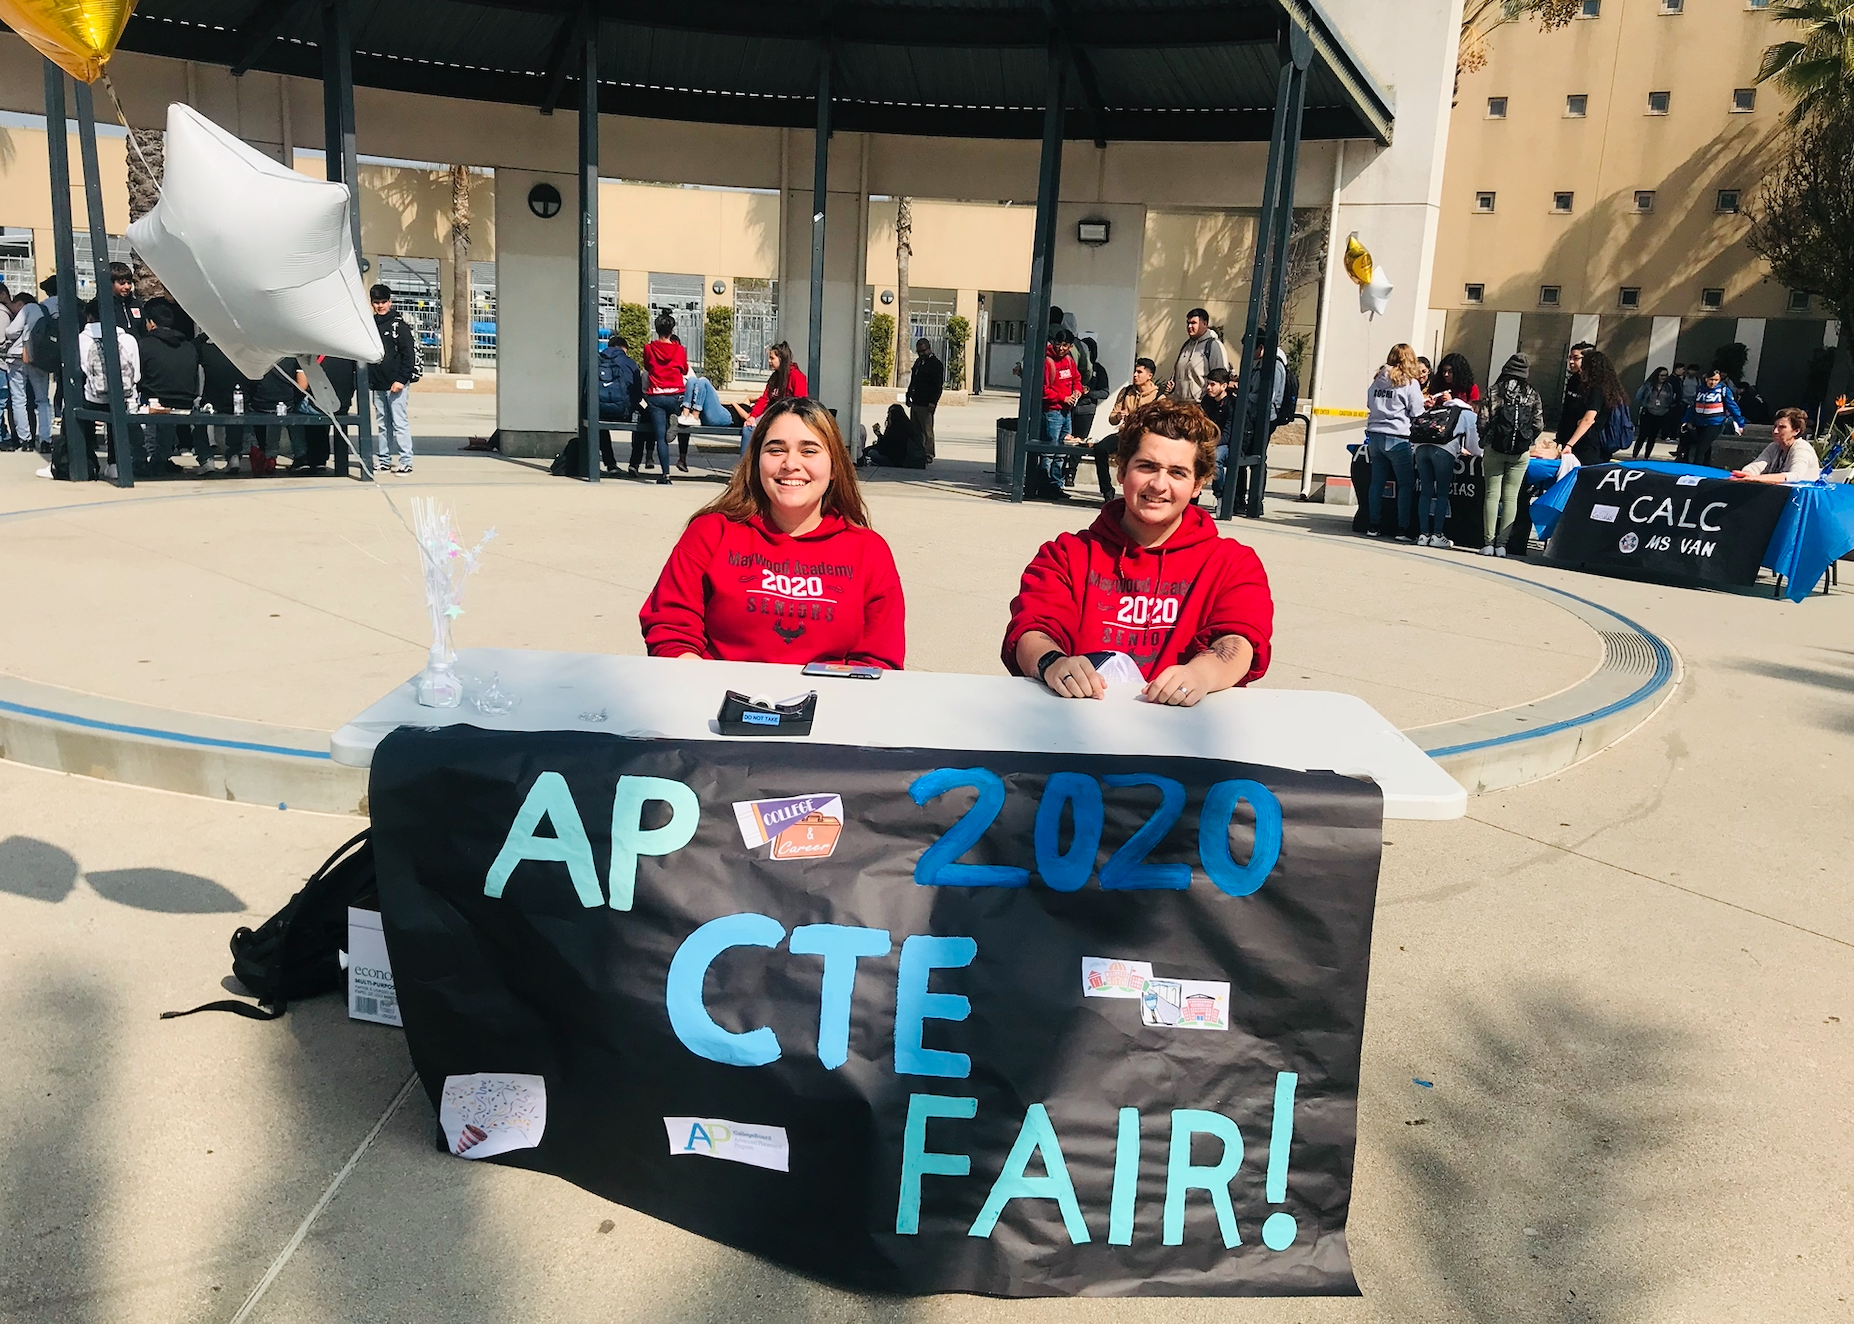 Maywood Academy High School's first AP & CTE Fair!